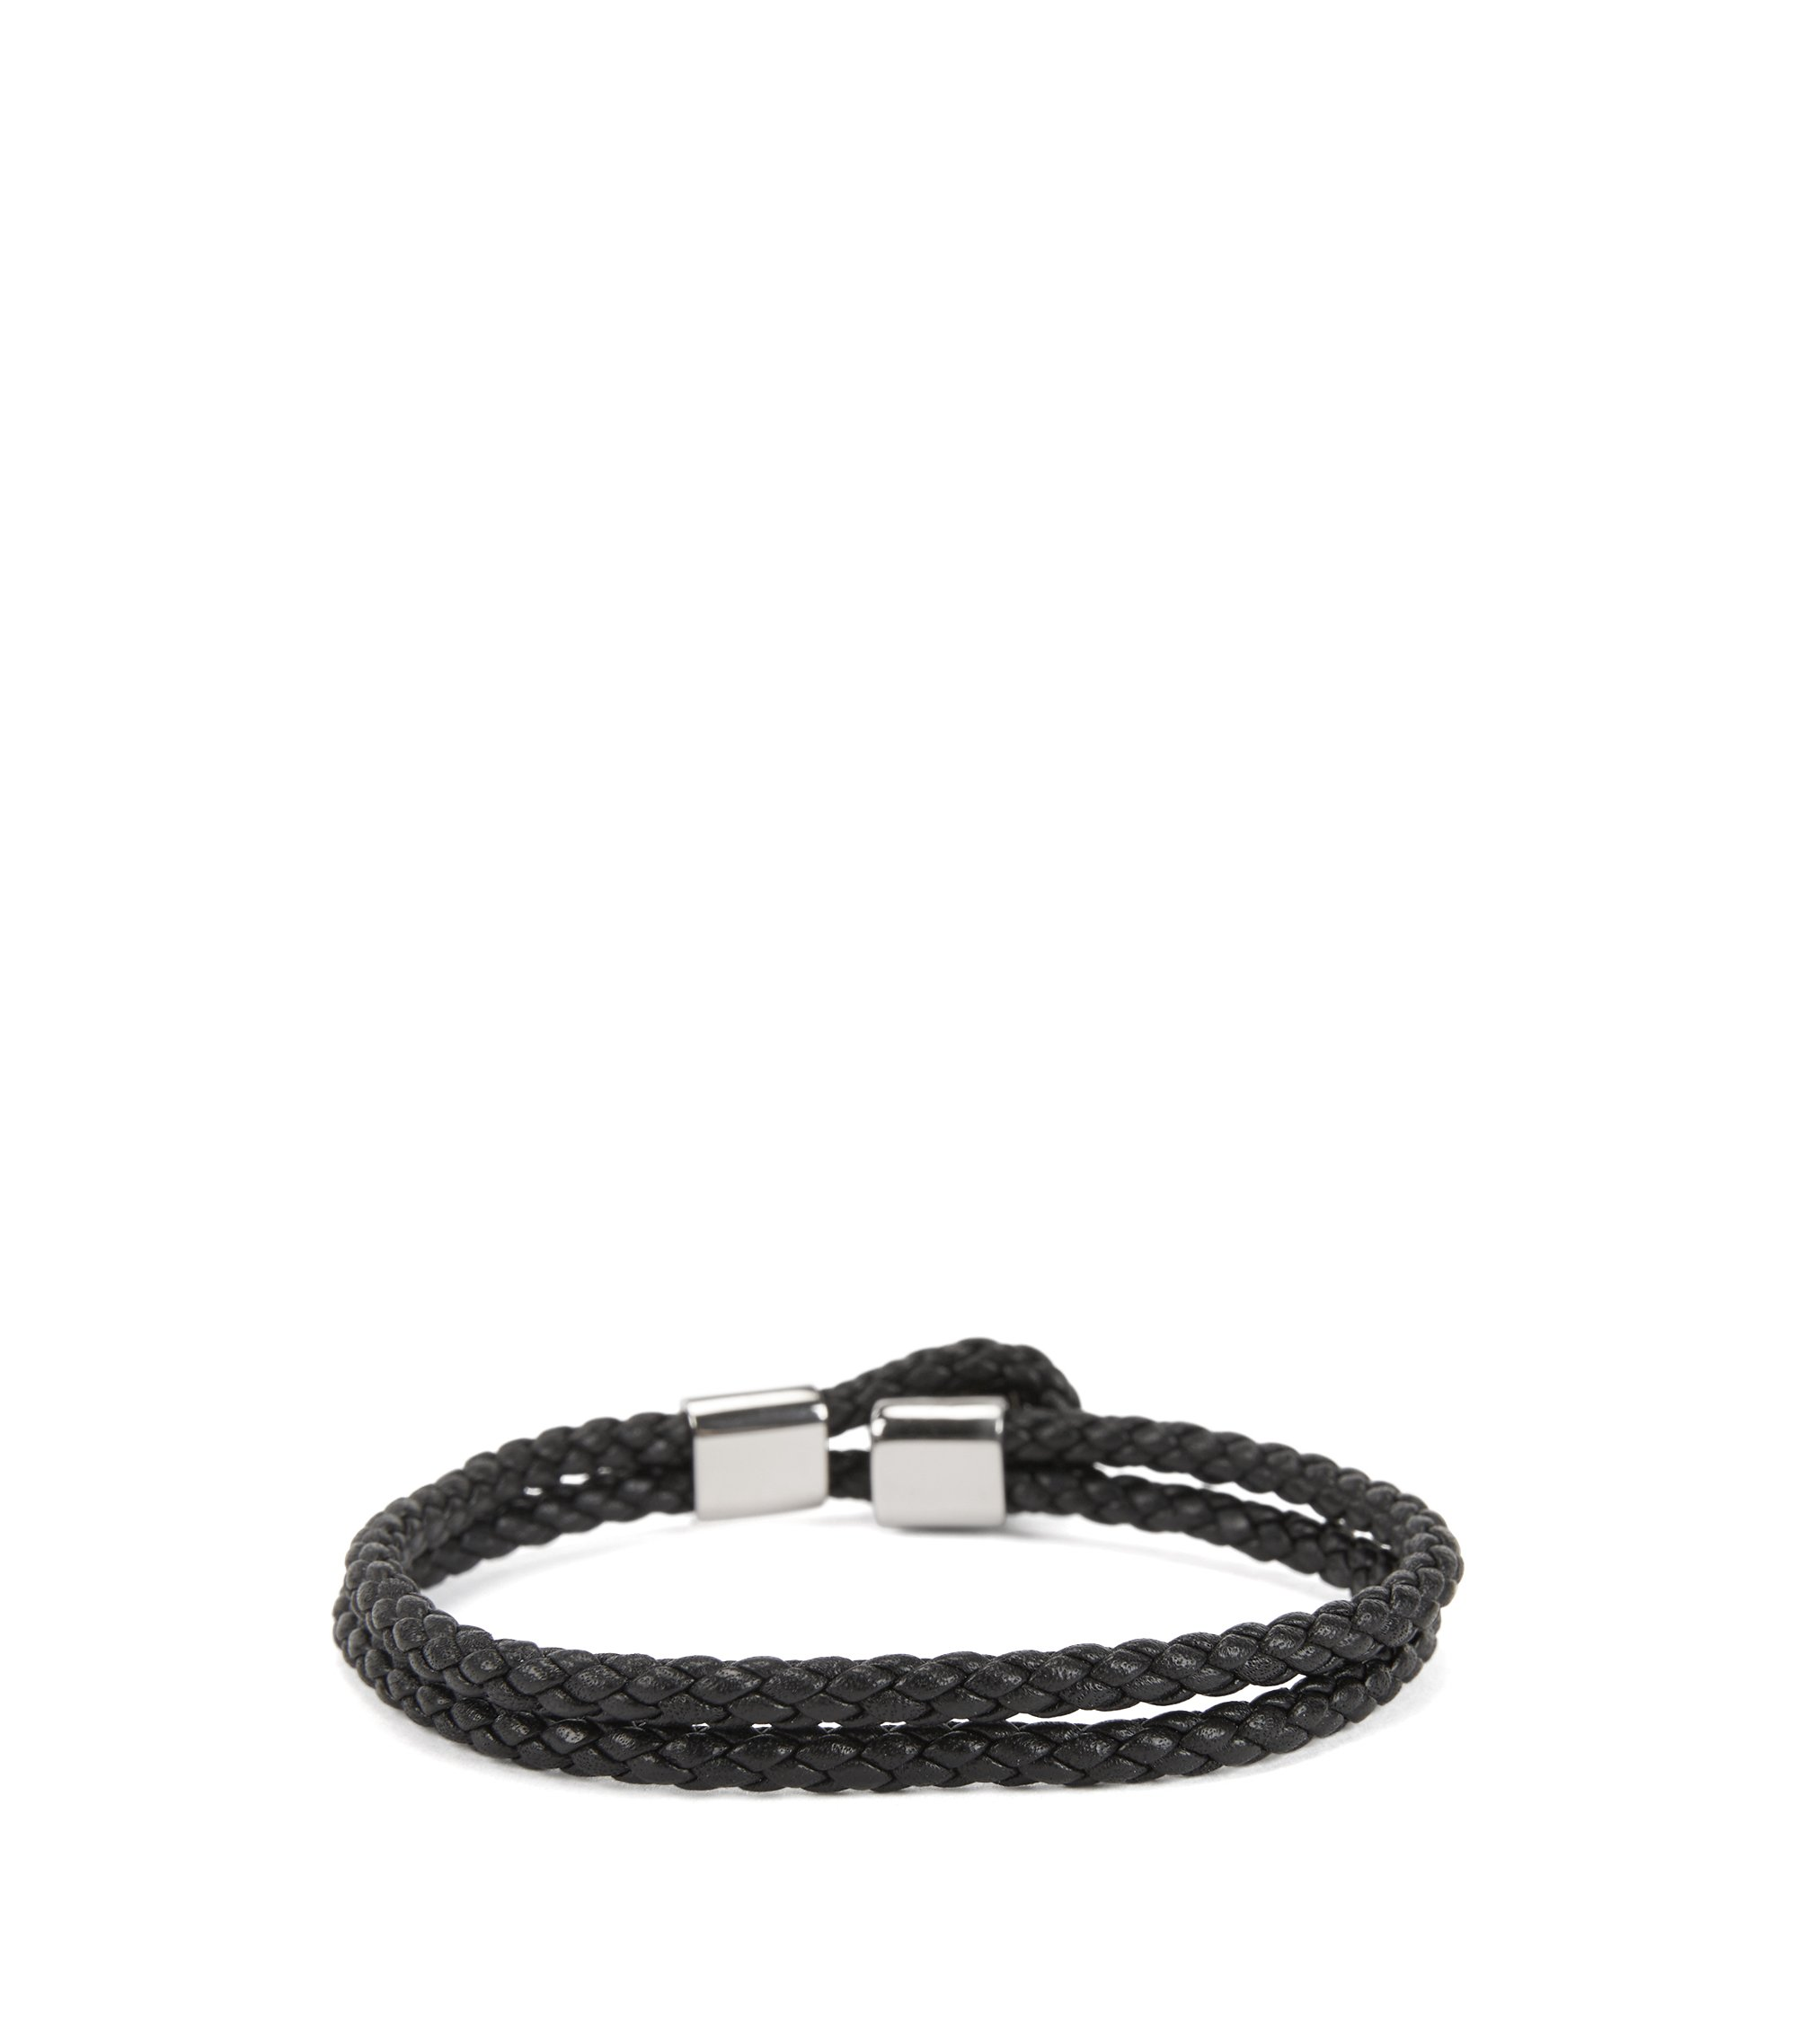 Italian-made double-wrap braided bracelet in calf leather, Black